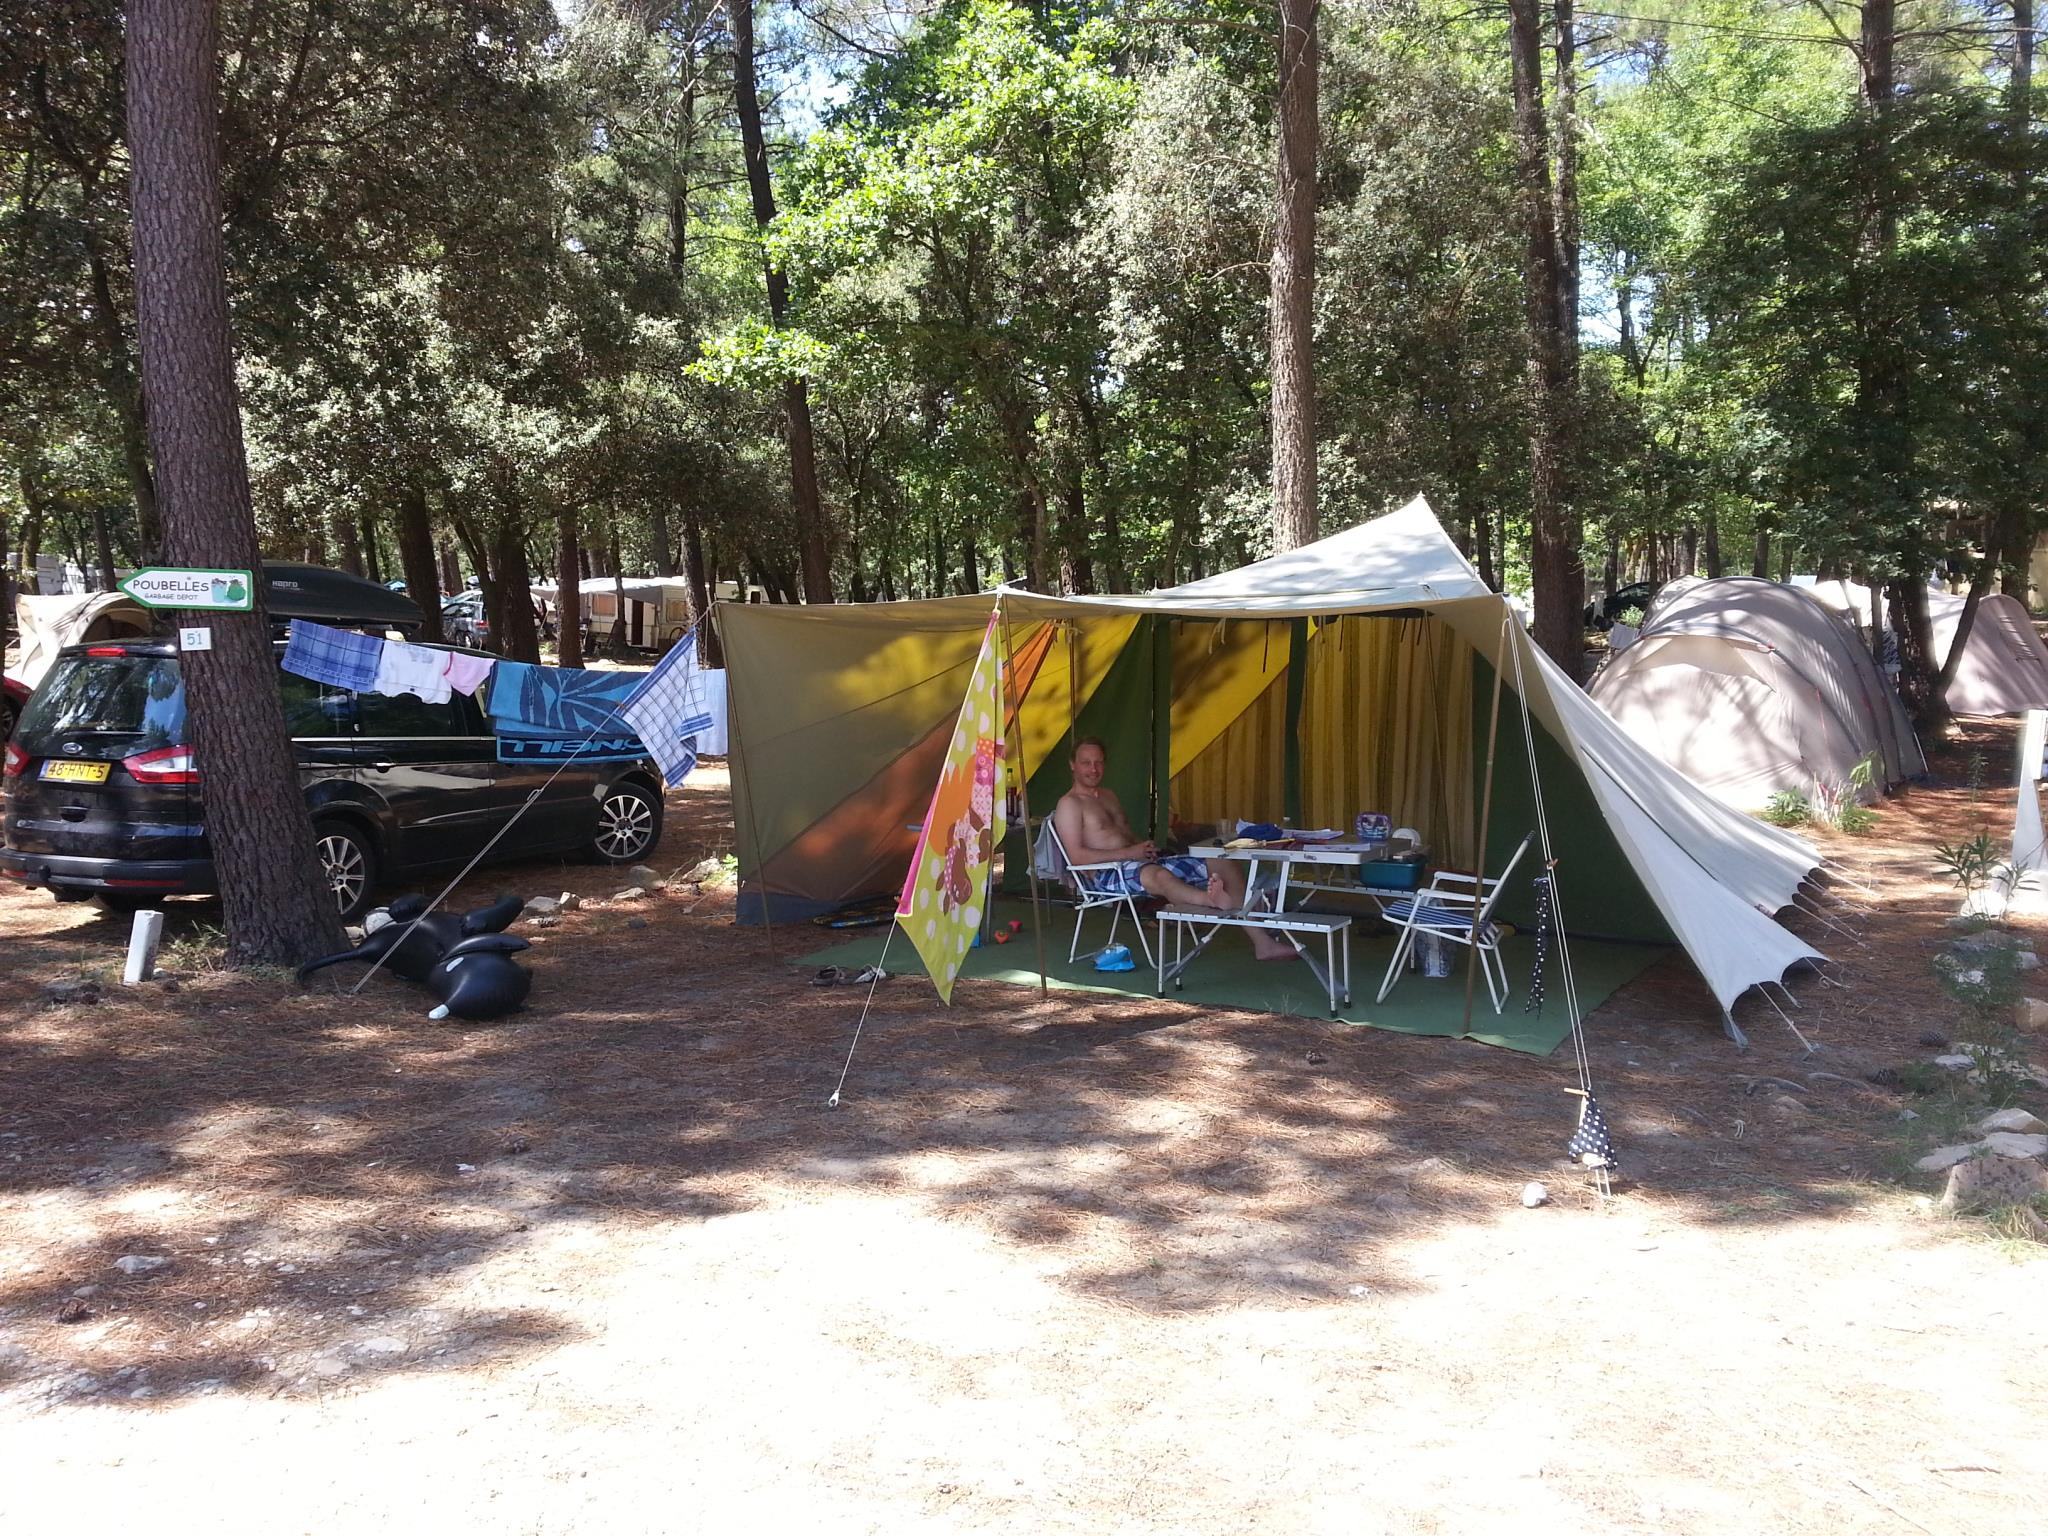 Emplacement - Emplacement - Camping La Simioune